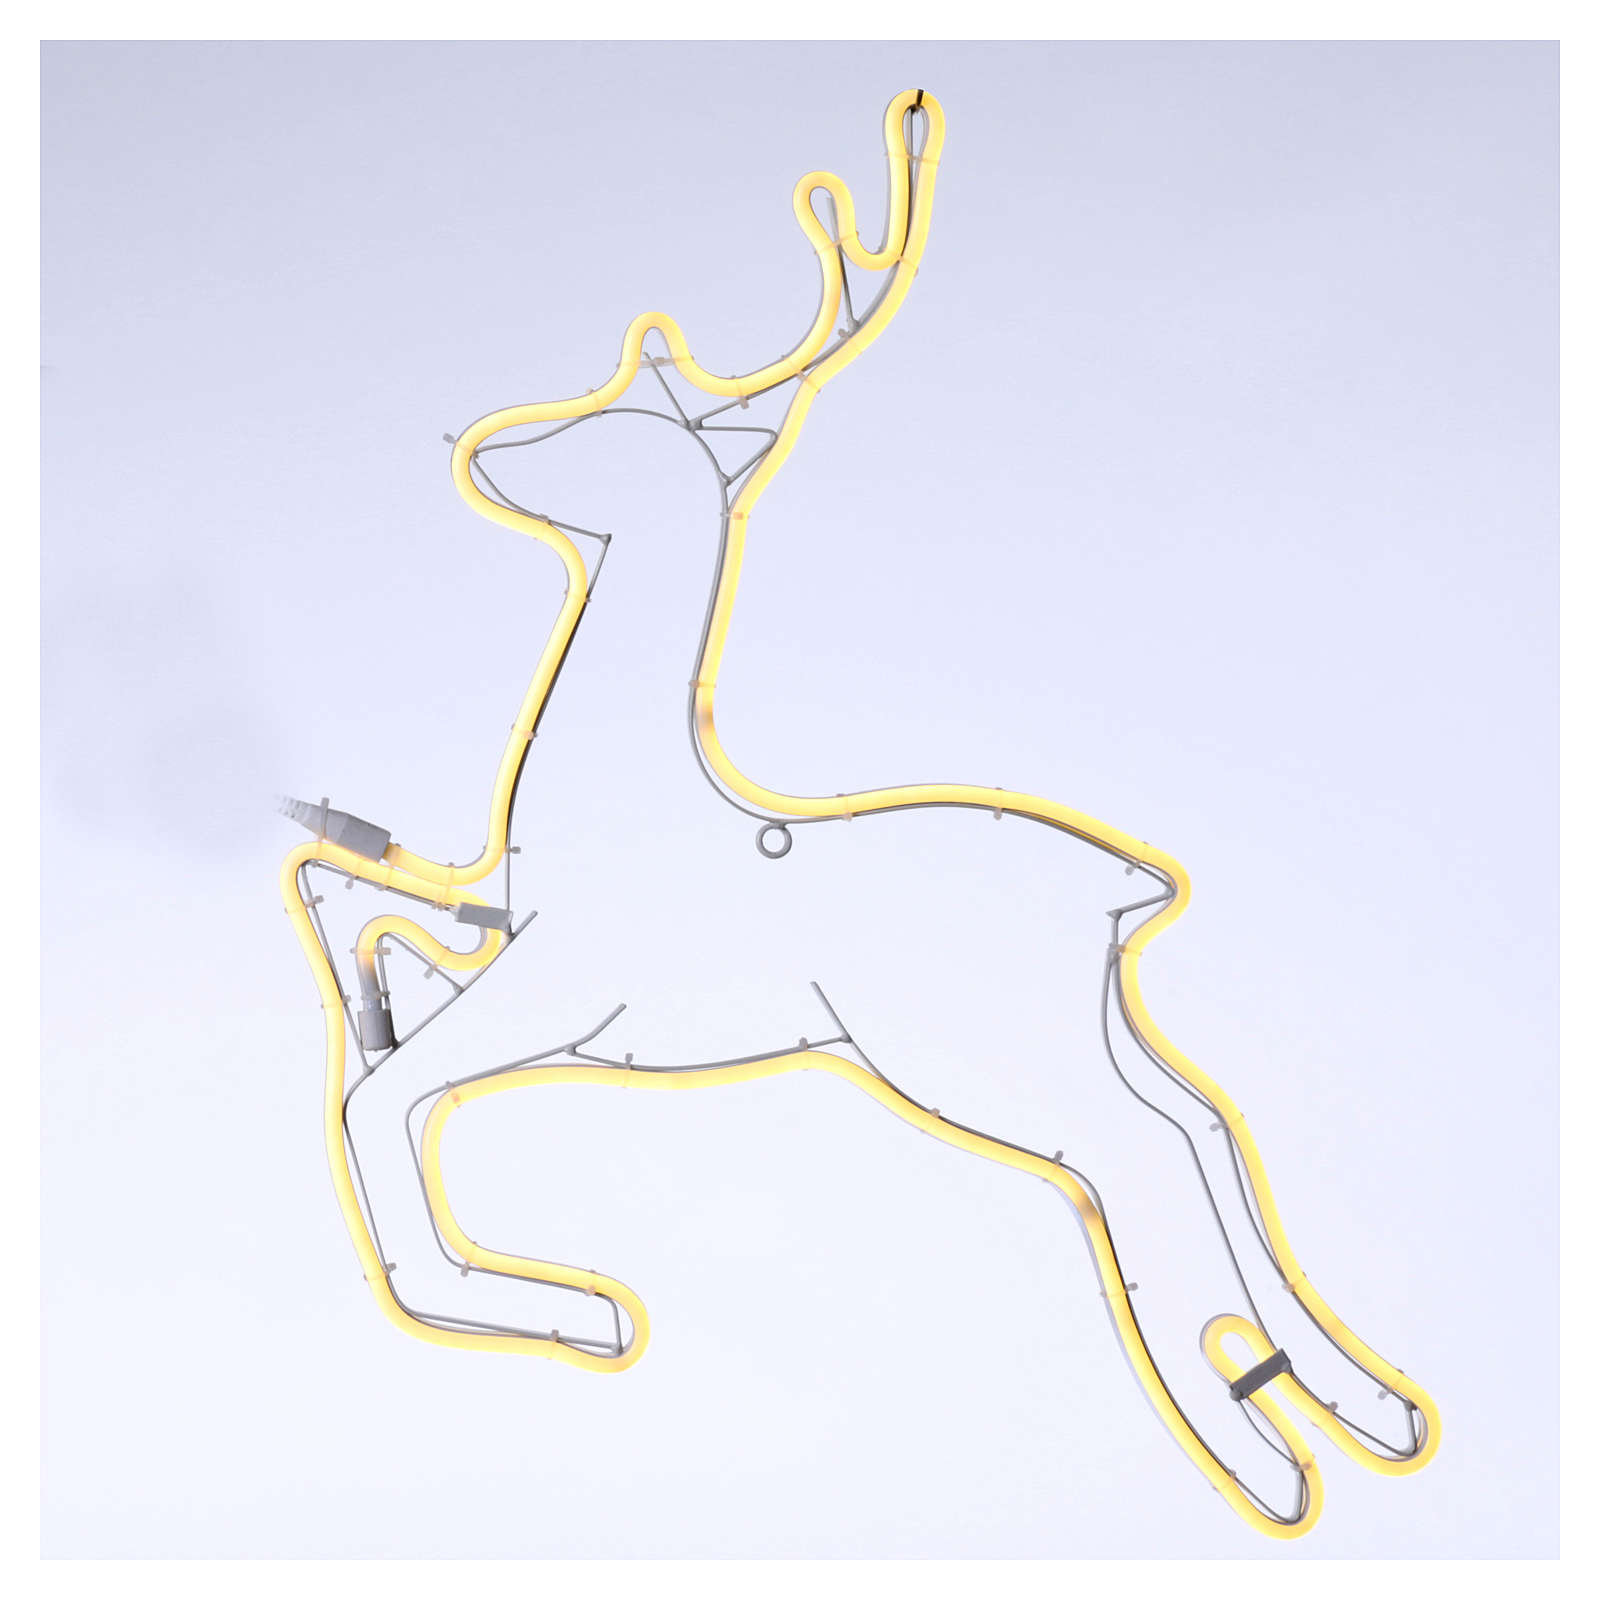 Reindeer light 360 warm white leds internal and external use 57x57 cm 3